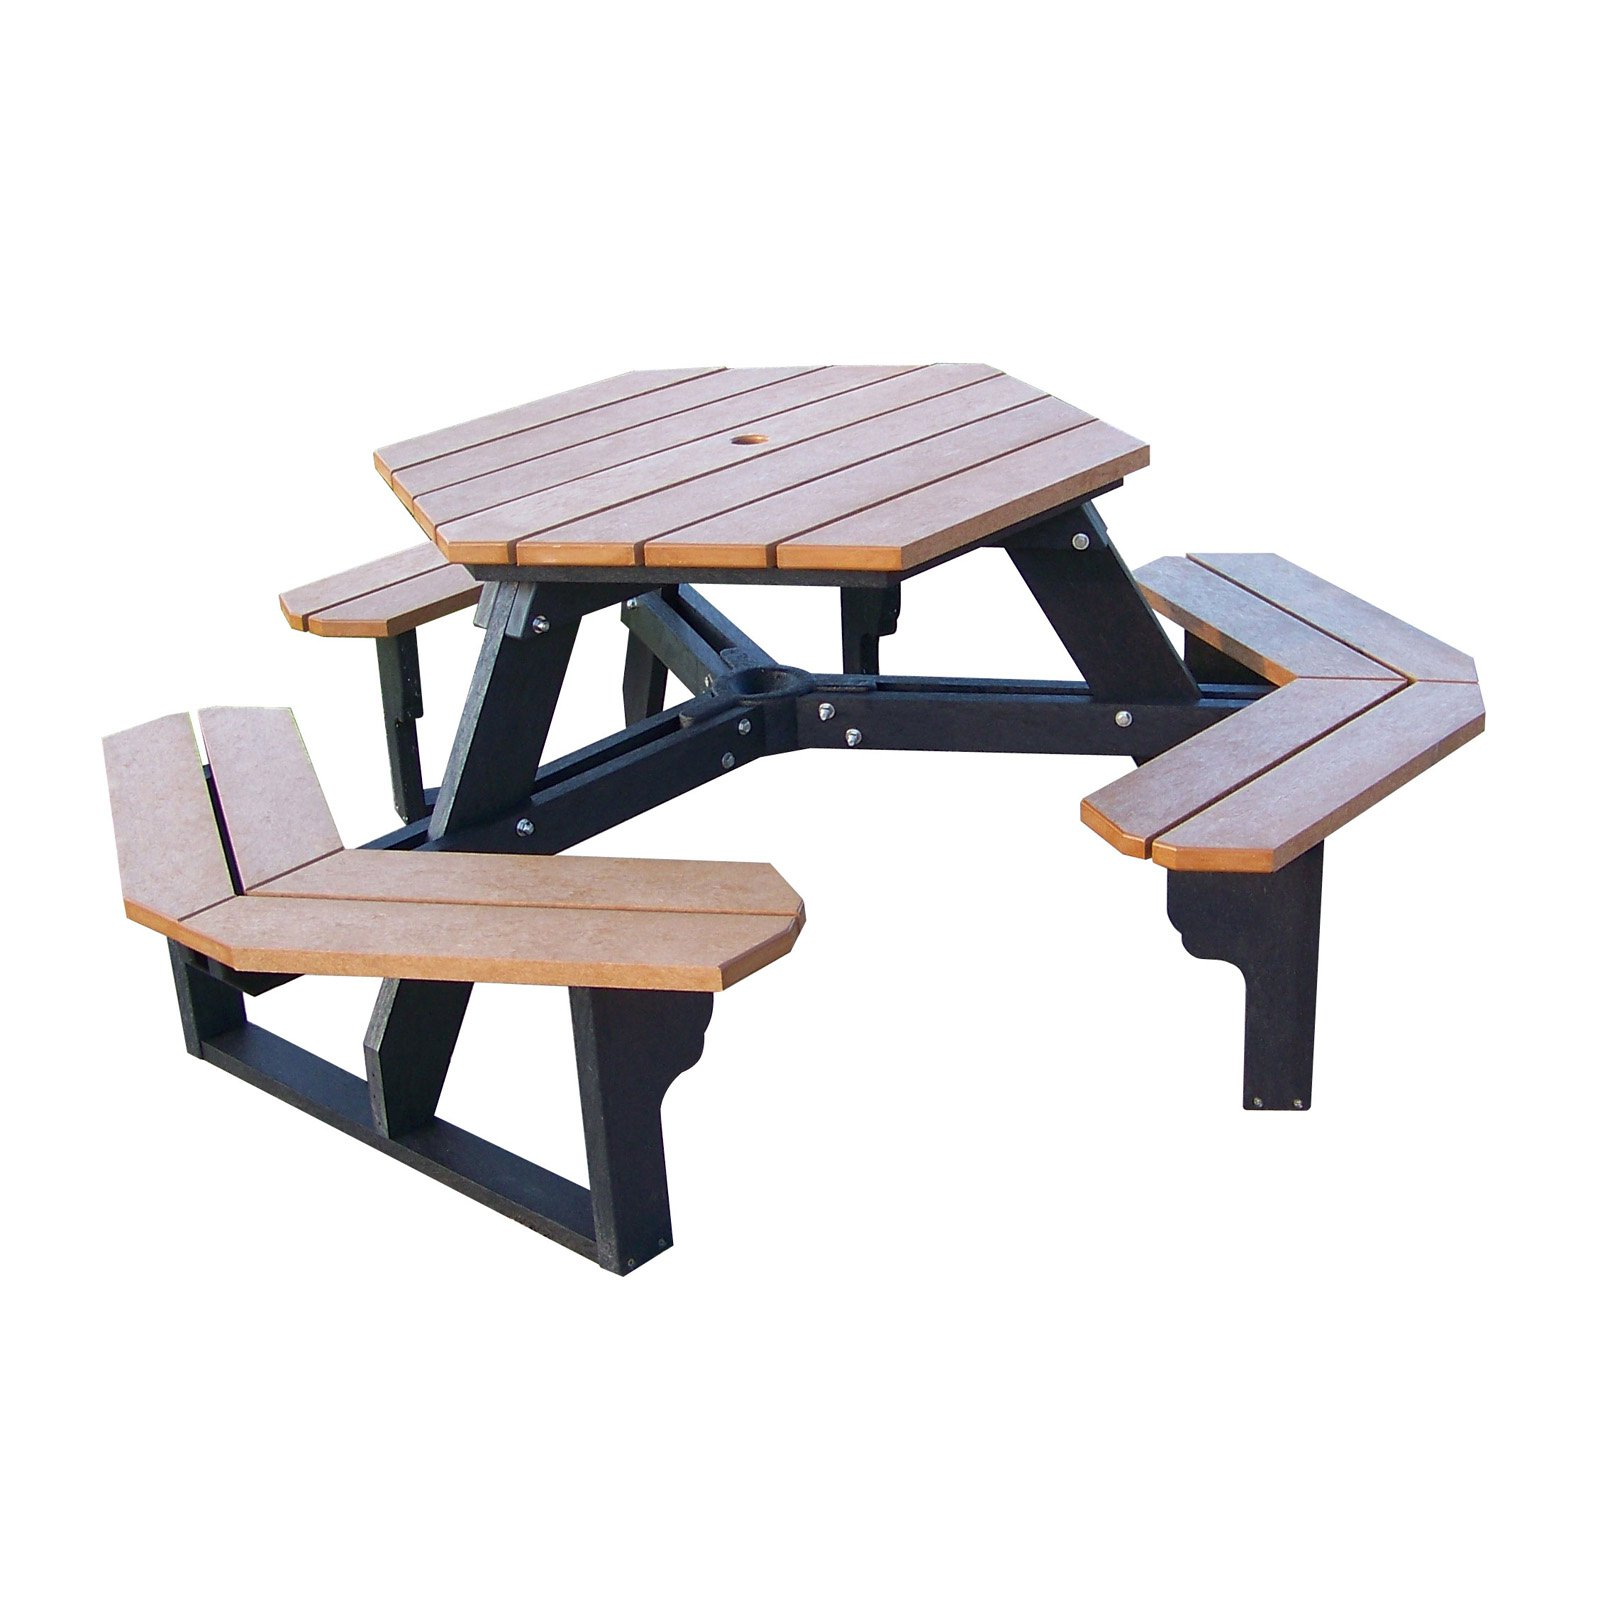 Polly Products Econo-Mizer Hexagon Recycled Plastic Picnic Table